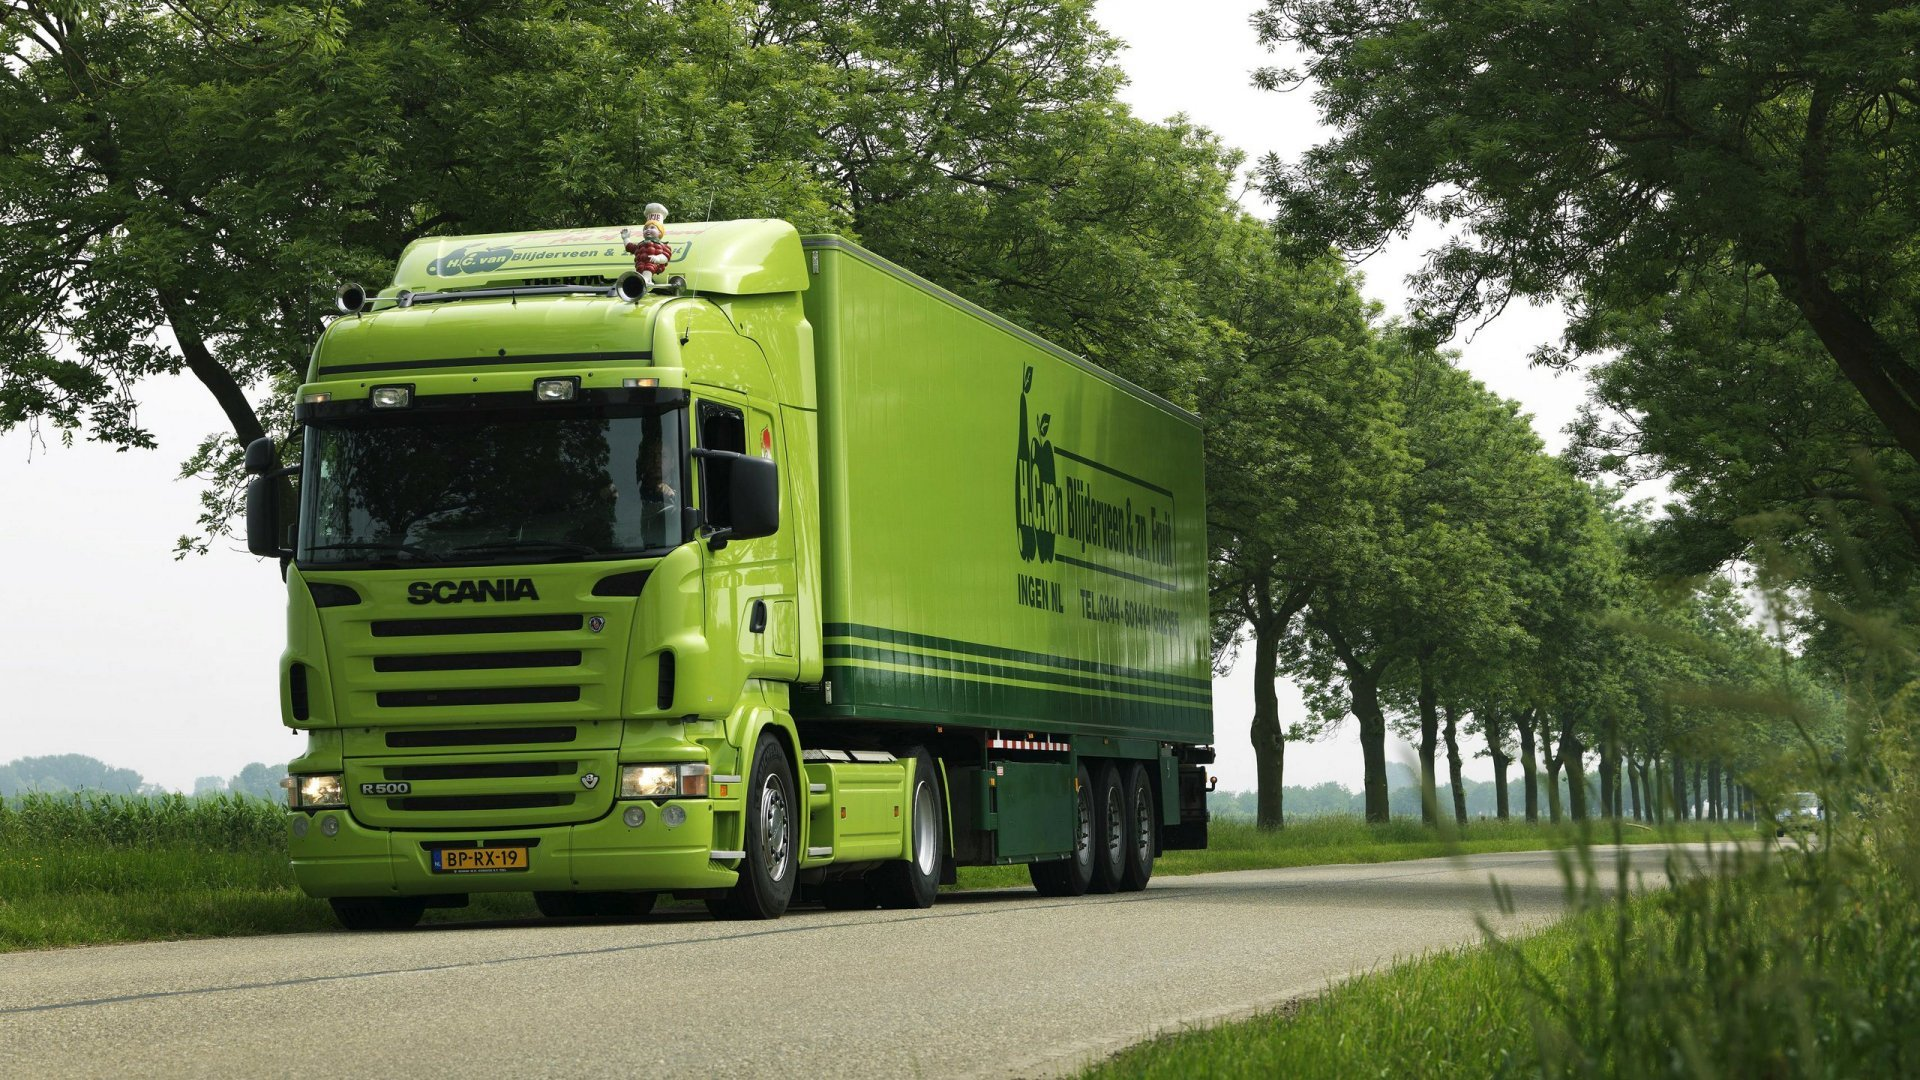 How much does a HGV license cost?